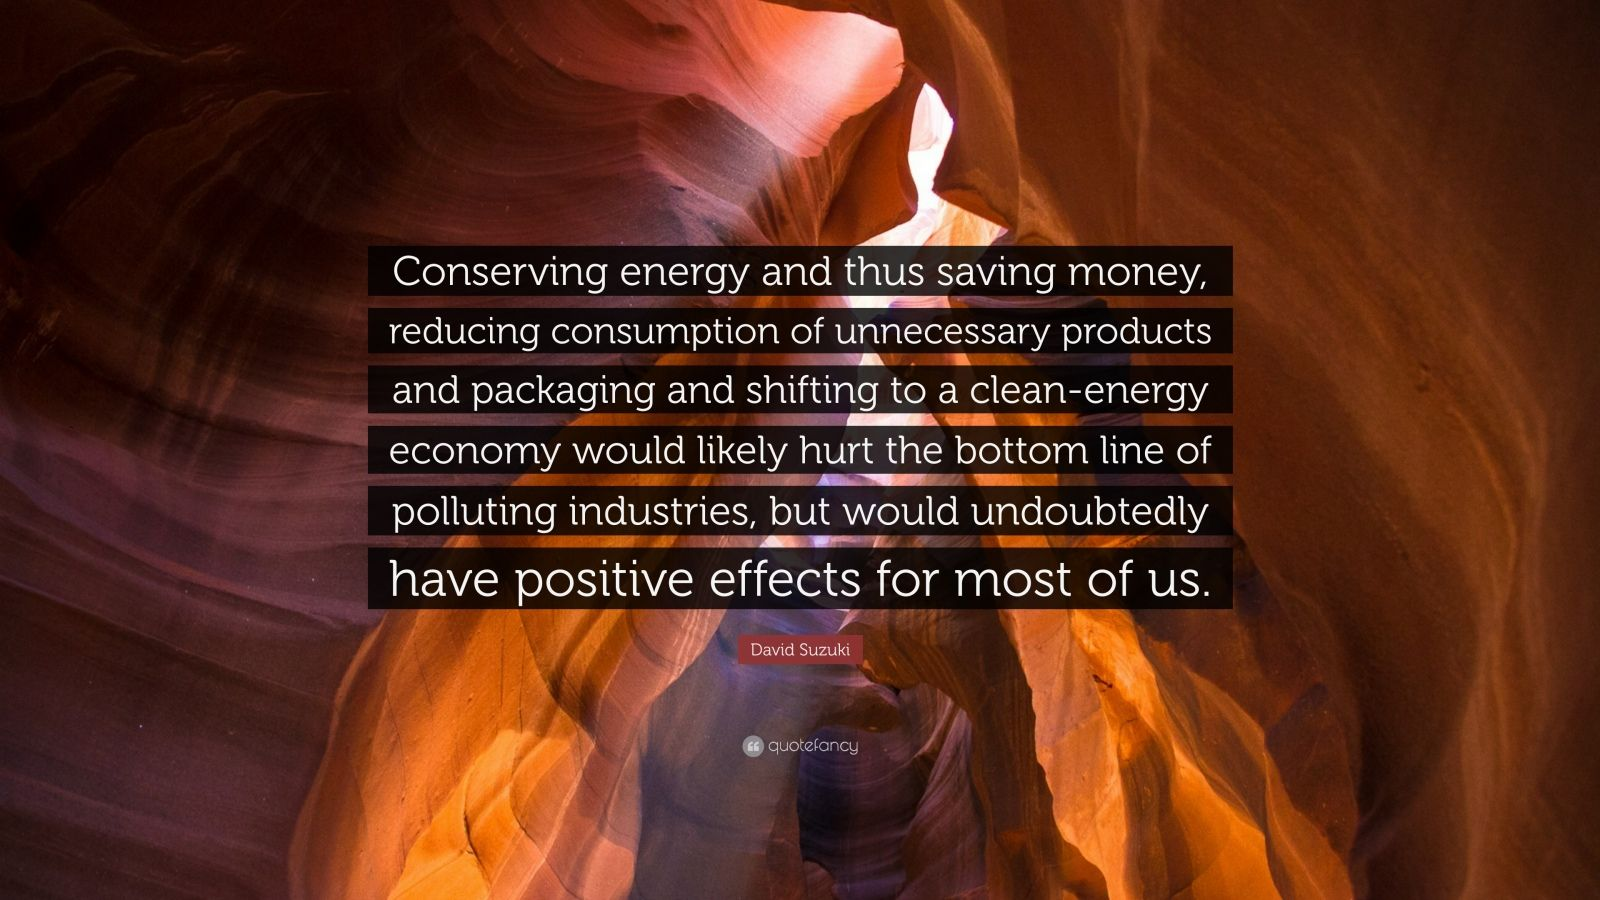 """David Suzuki Quote: """"Conserving energy and thus saving money, reducing consumption of unnecessary products and packaging and shifting to a clean-energy economy would likely hurt the bottom line of polluting industries, but would undoubtedly have positive effects for most of us."""""""